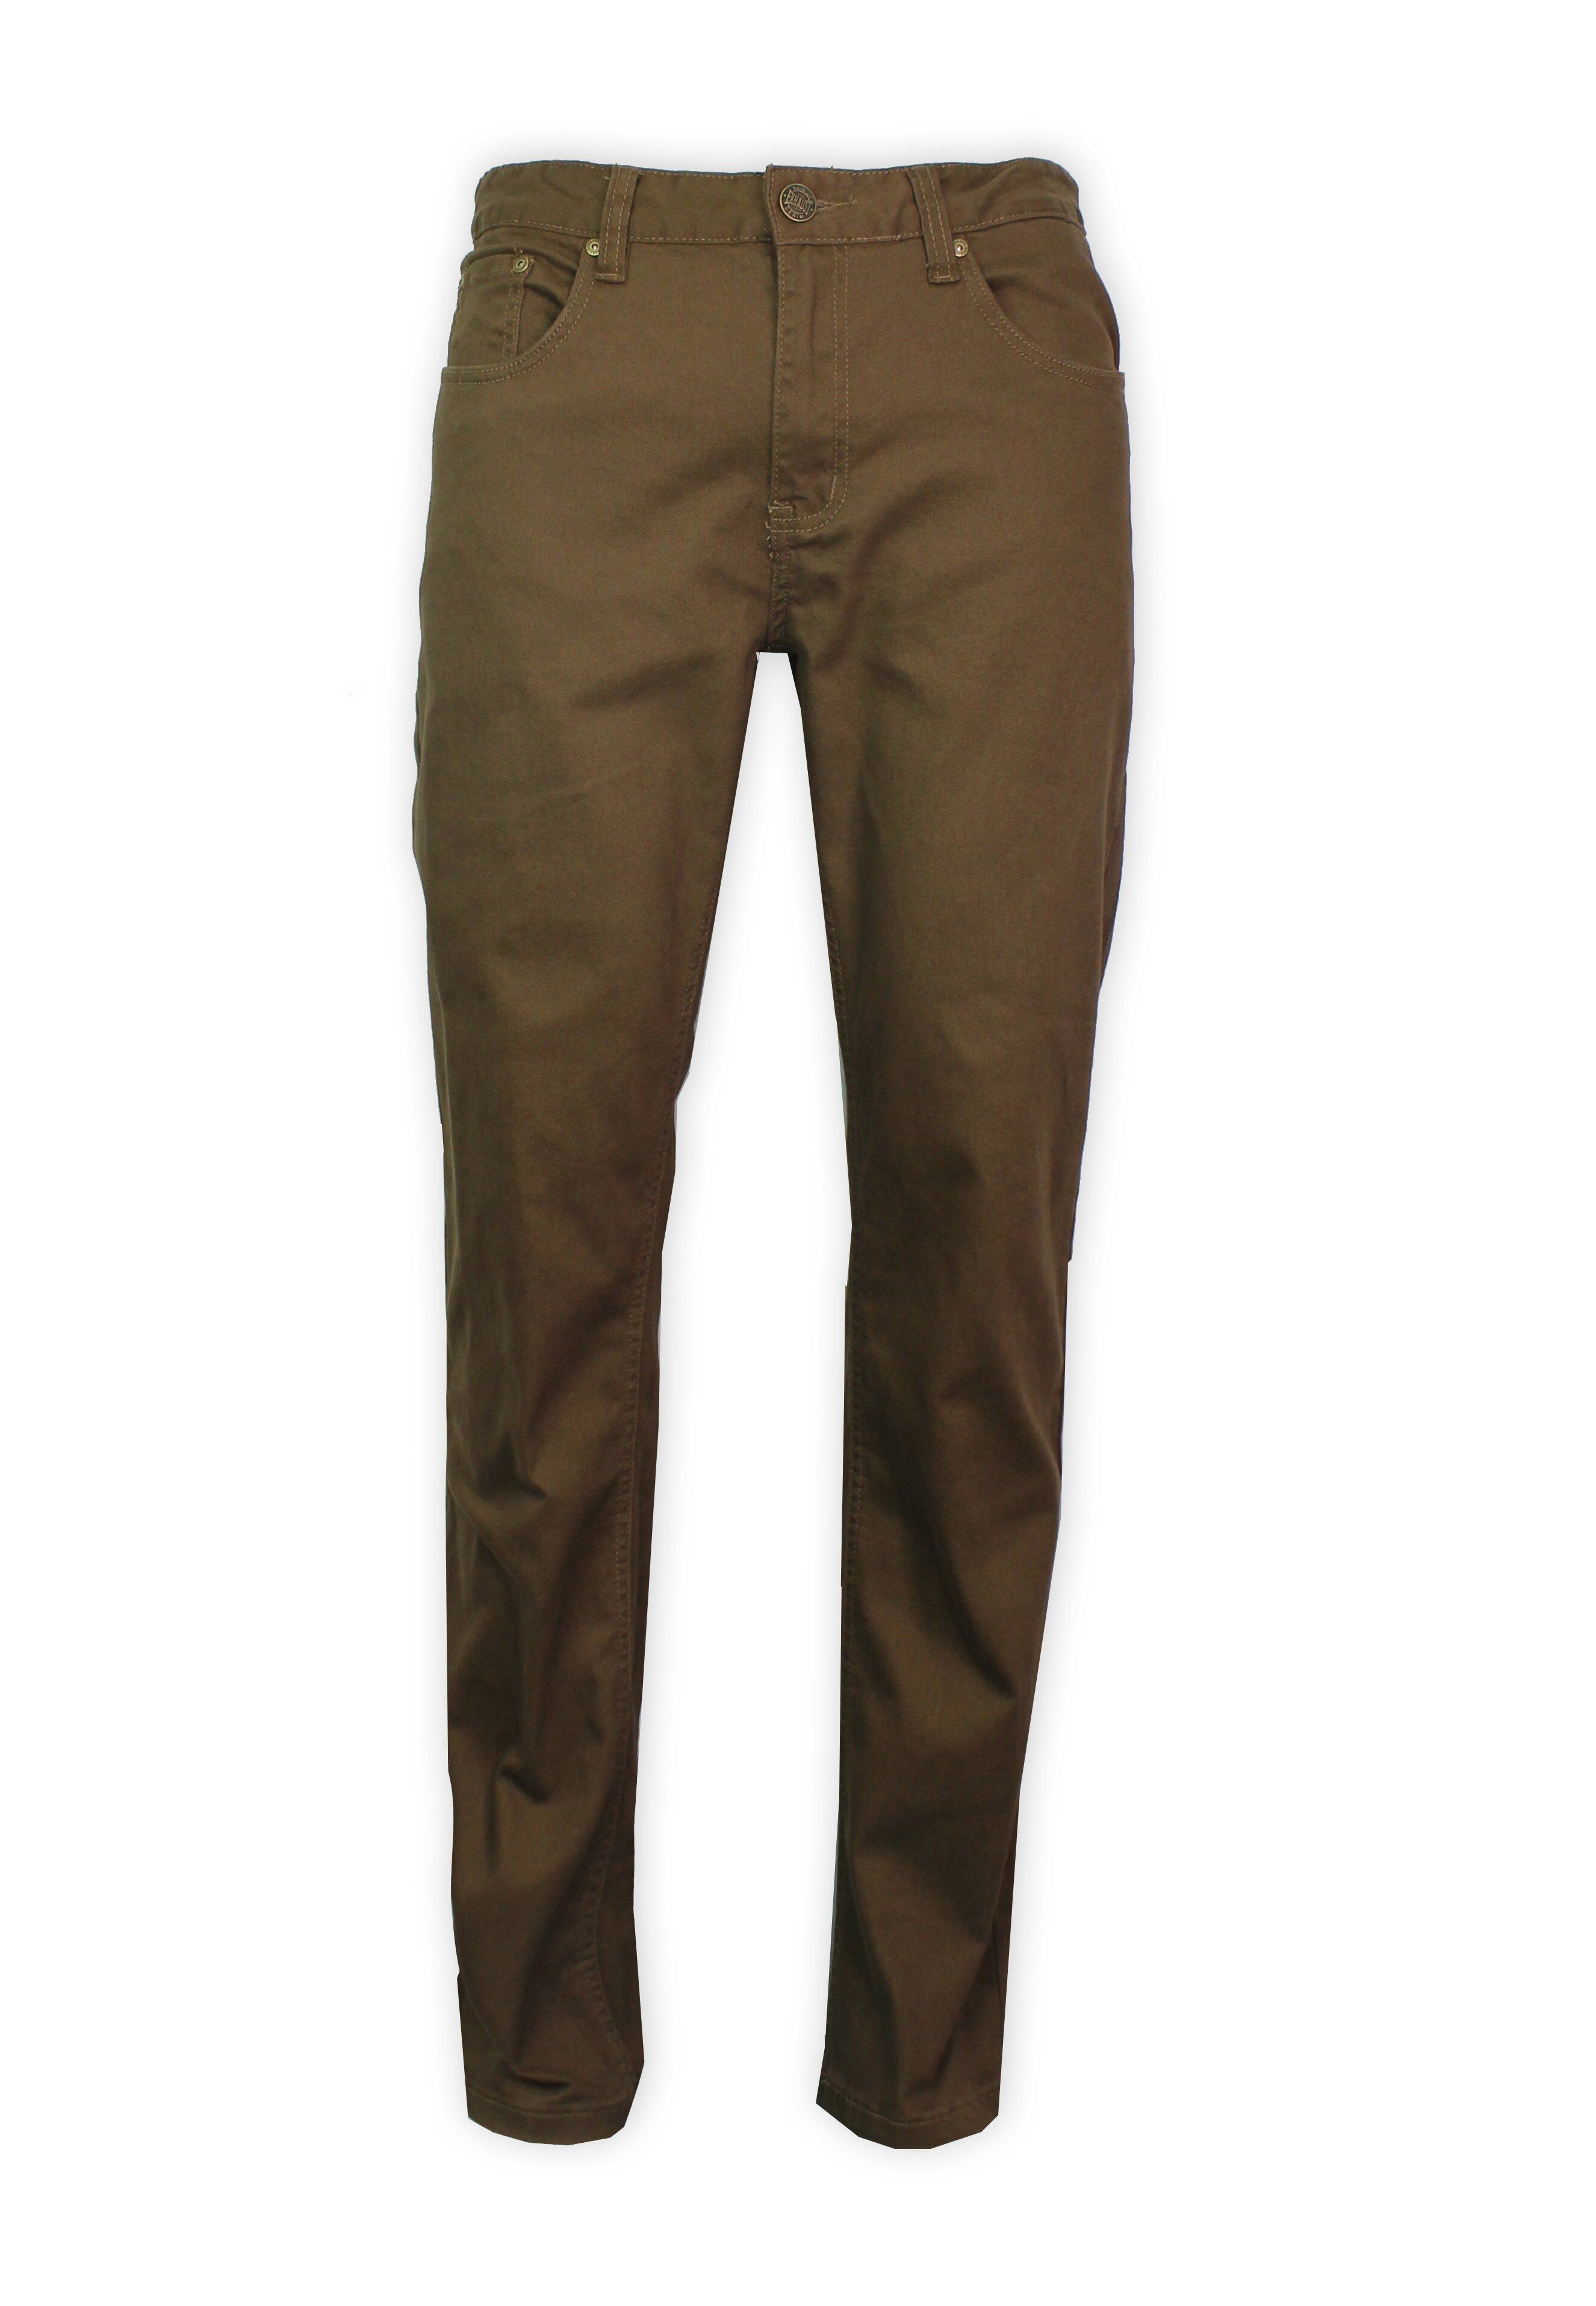 Exhaust Stretch Straight Cut Cotton Pants 984